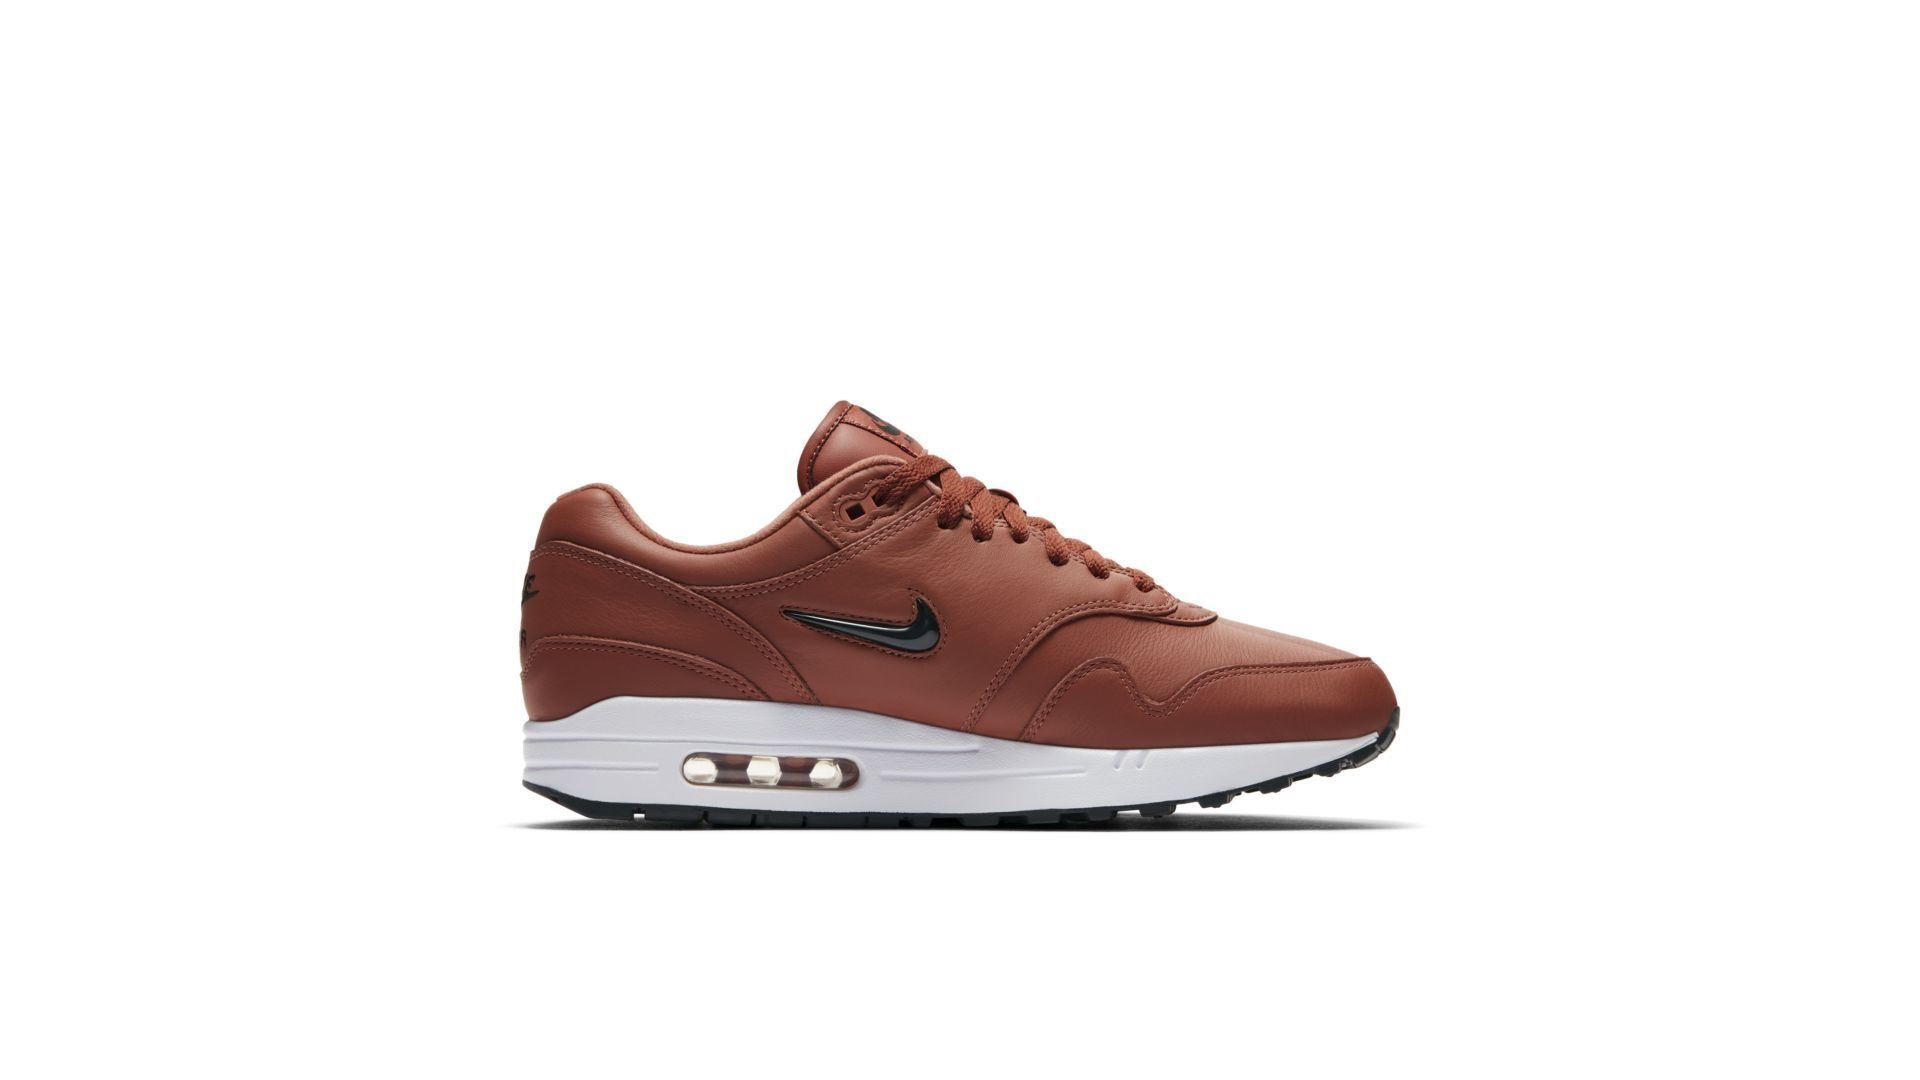 Nike Air Max 1 Premium SC Jewel Dusty Peach (918354-200)